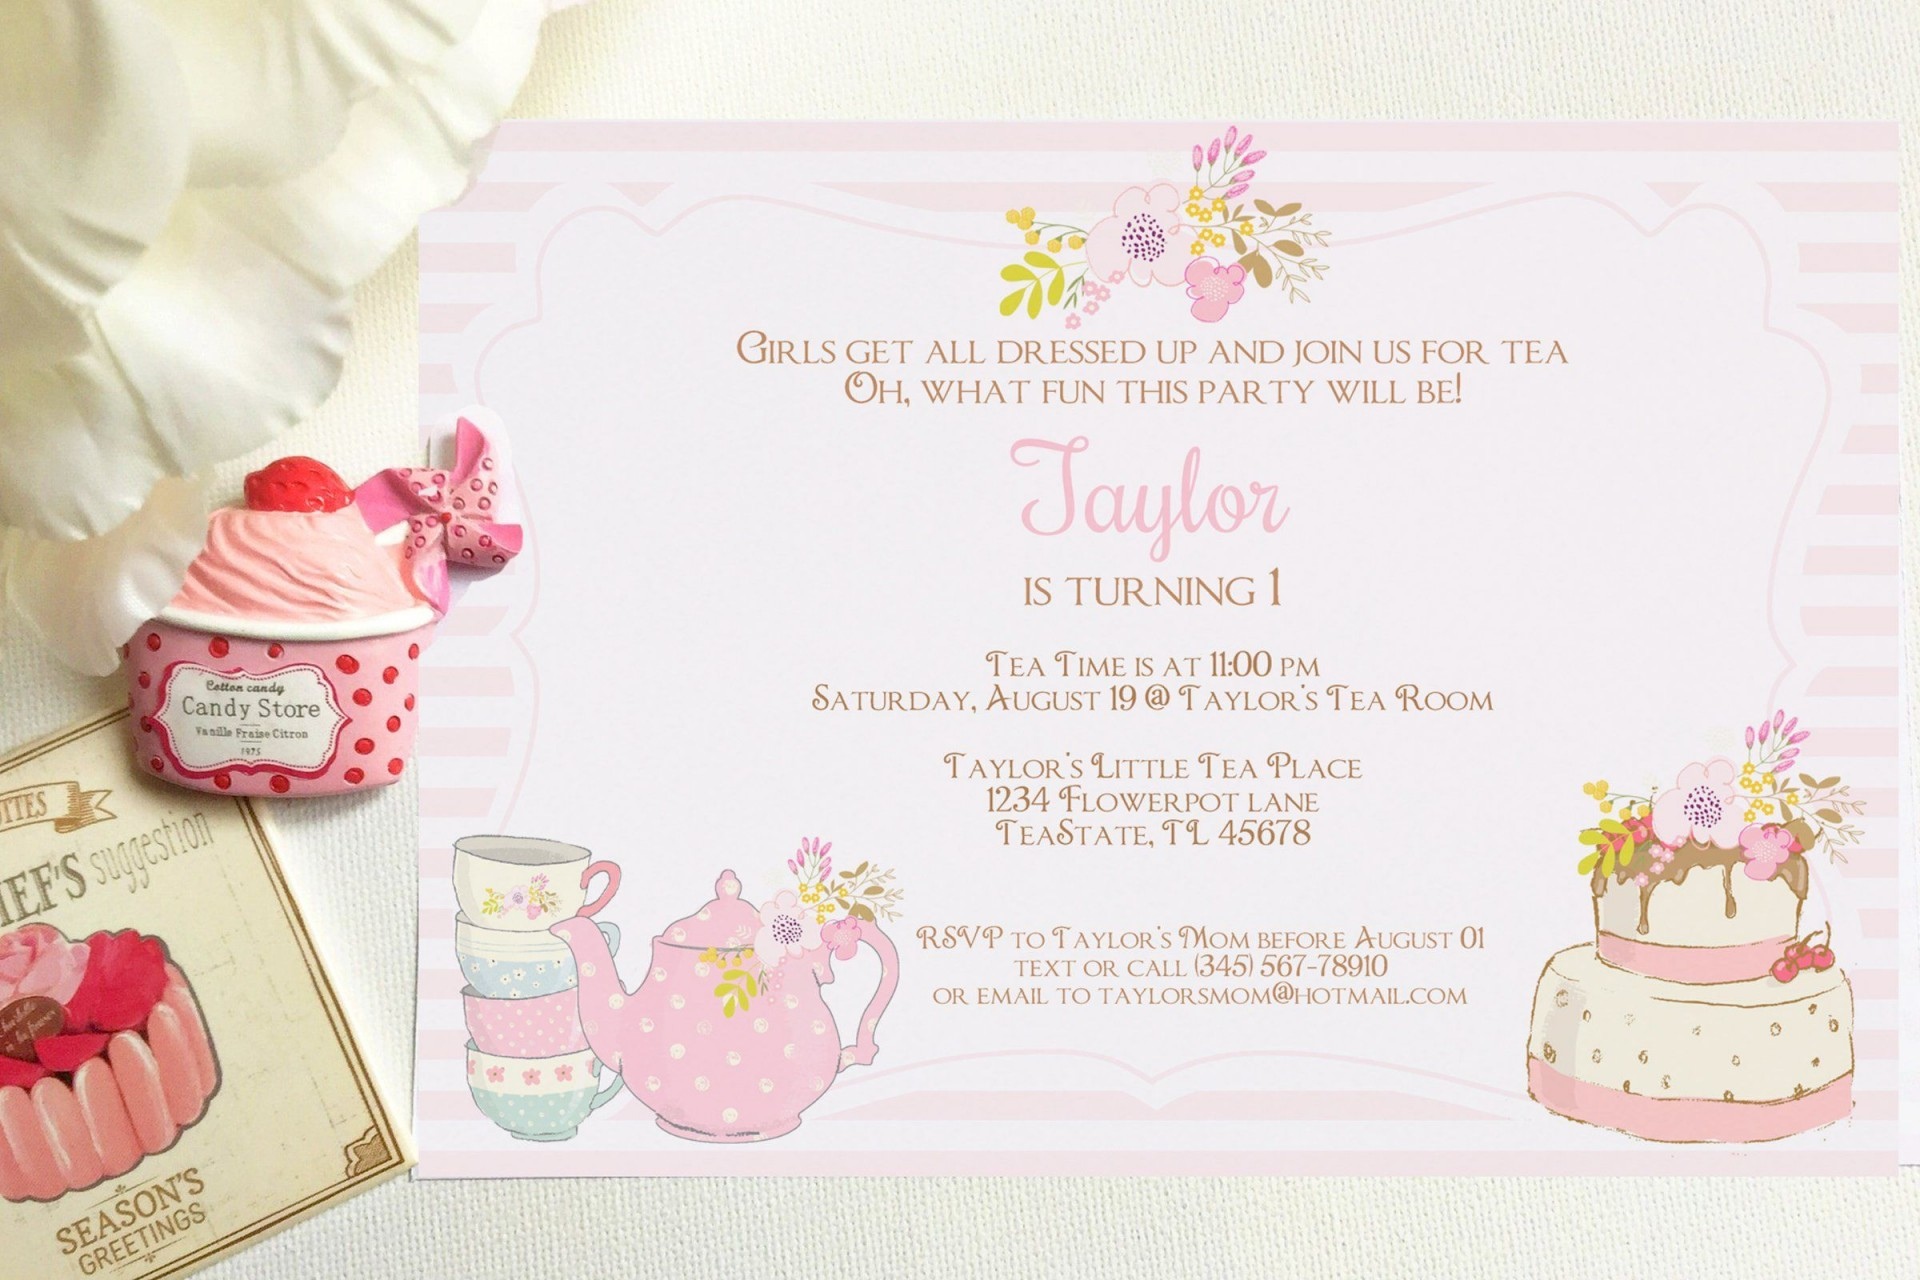 008 Outstanding Tea Party Invitation Template High Definition  Online Letter1920